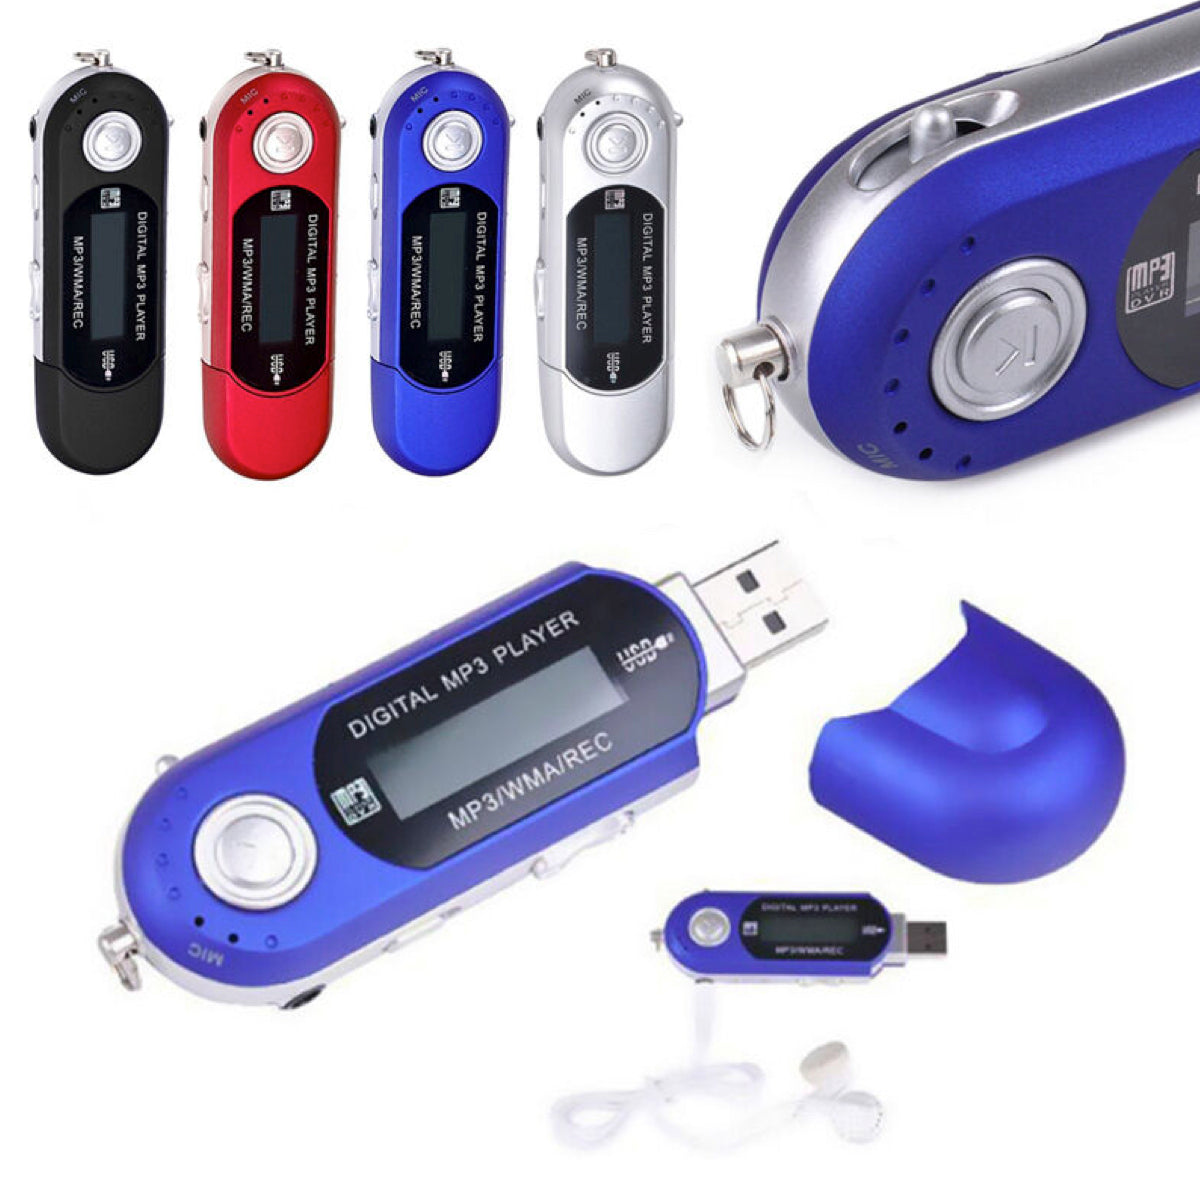 Mini Digital MP3 Player with USB Port & LCD Screen - Assorted Colors